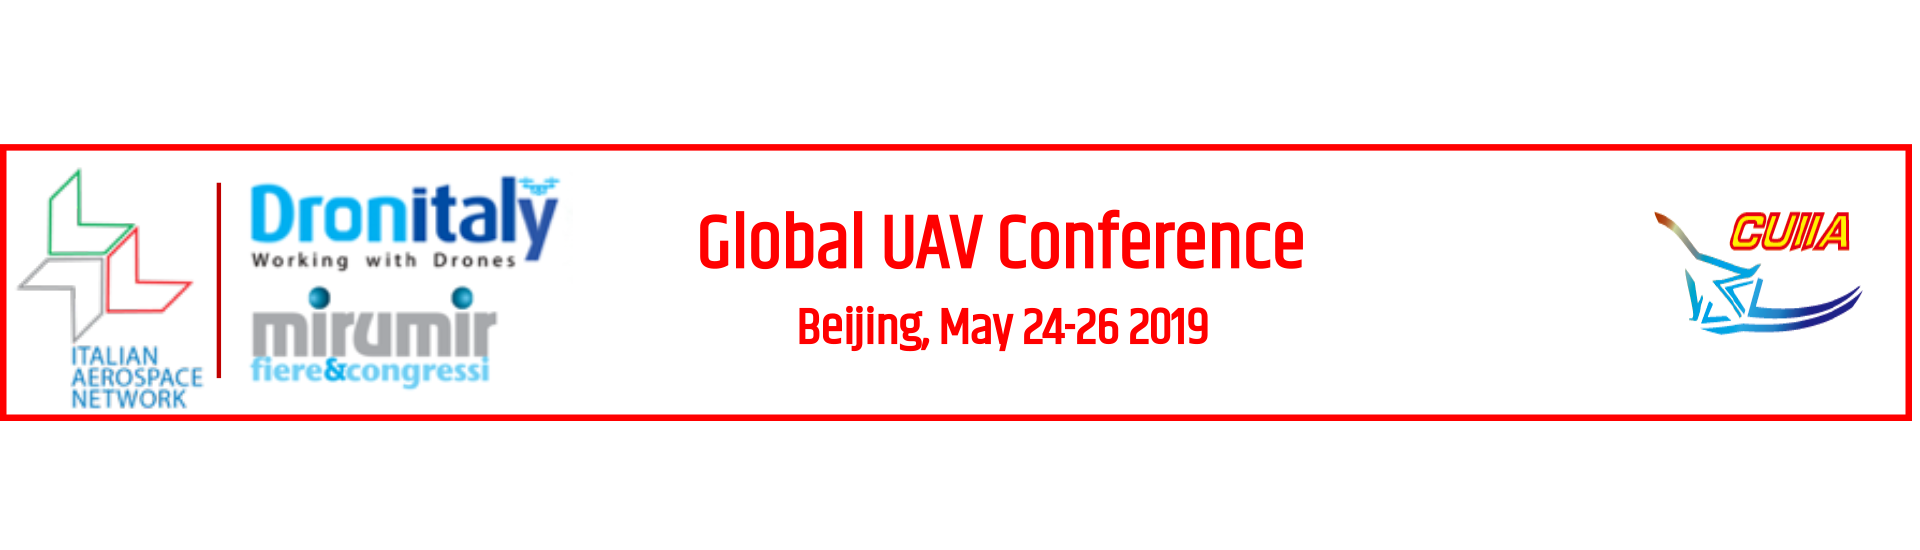 IAN Event - Global UAV Conference 2019 - Banner